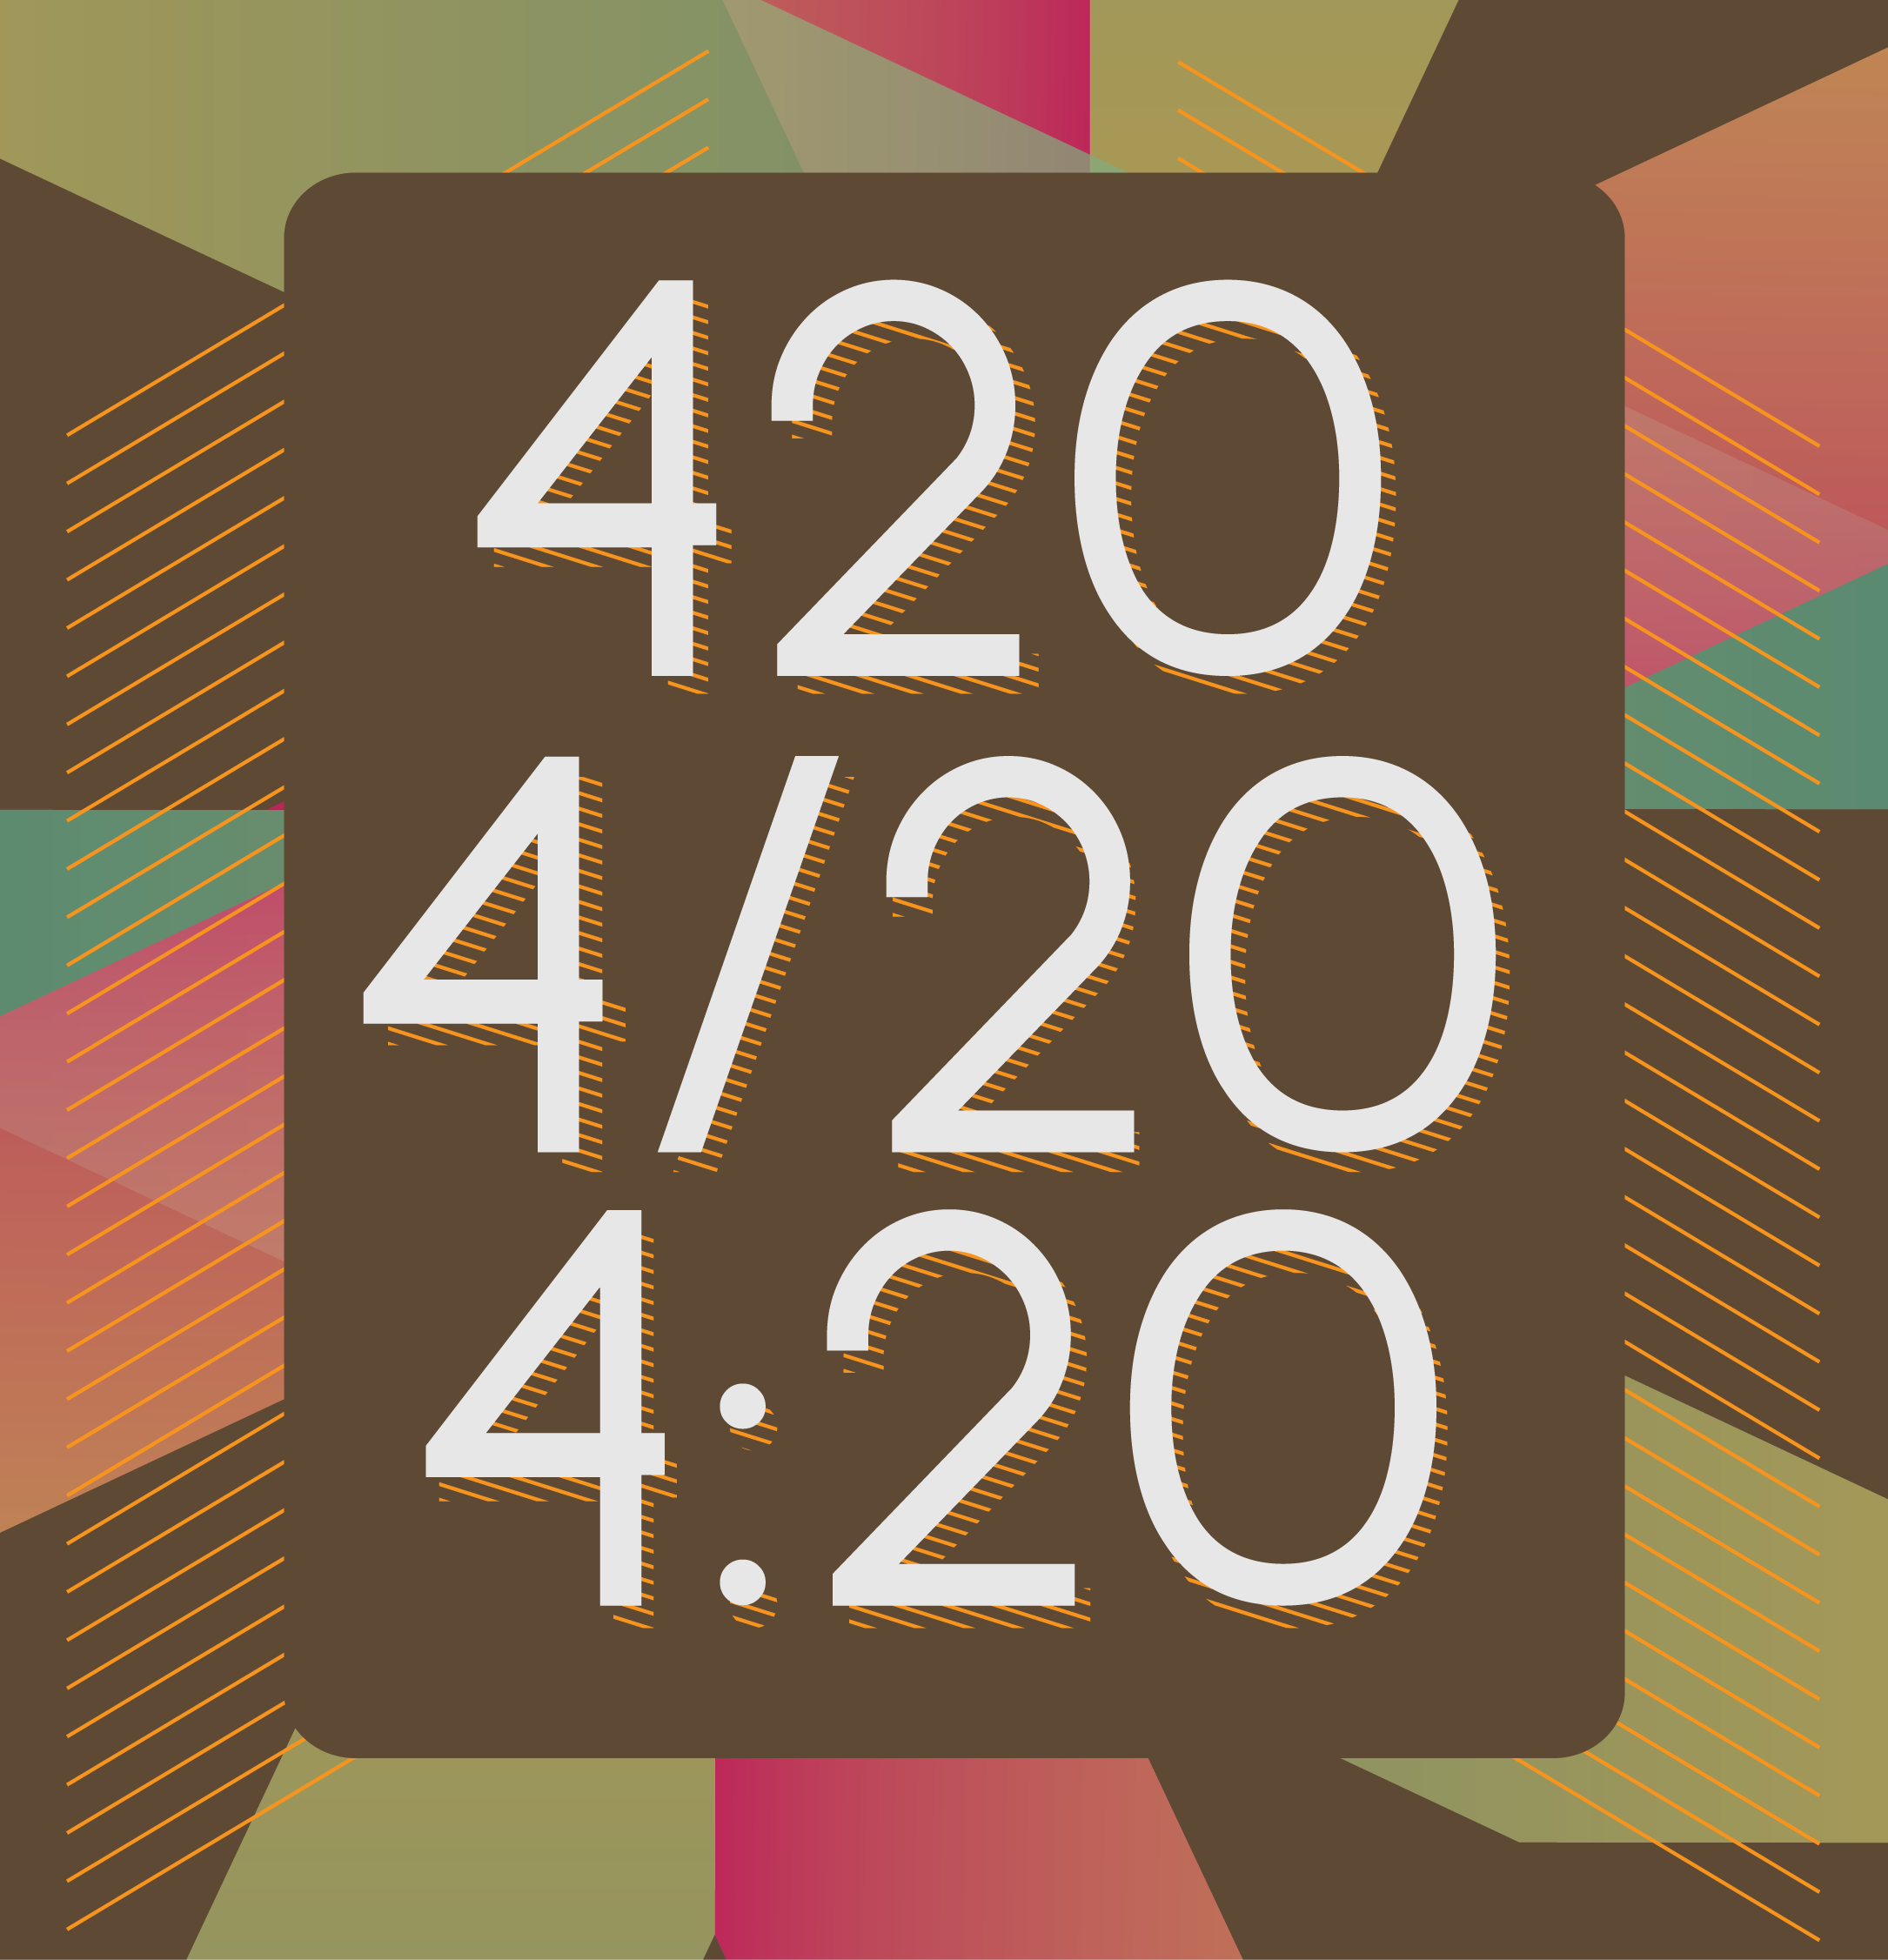 420 on 4/20 by 4:20 – Preparing the Soil – Part 3